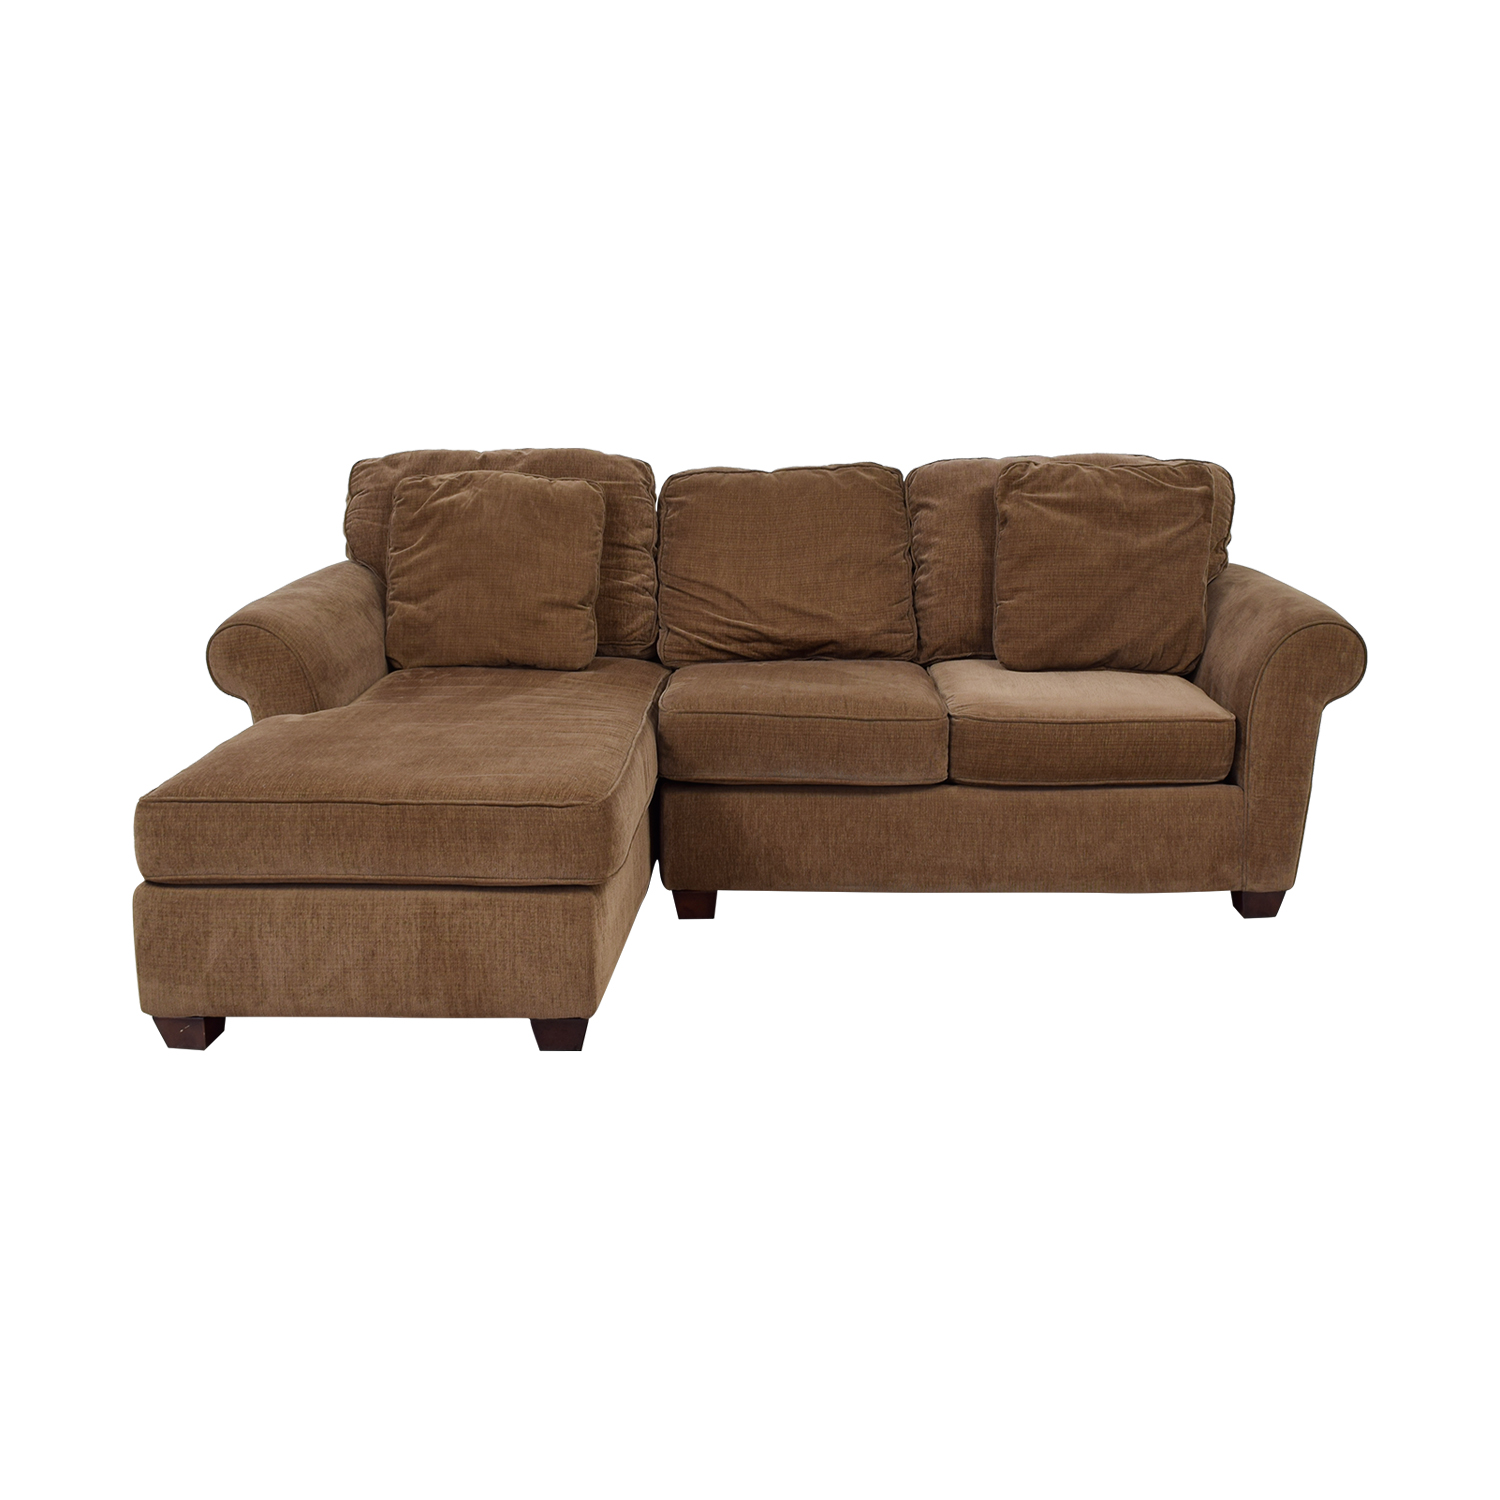 Raymour & Flanigan Raymour & Flanigan Brown Multi Colored Tweed Chaise Sectional Sofas